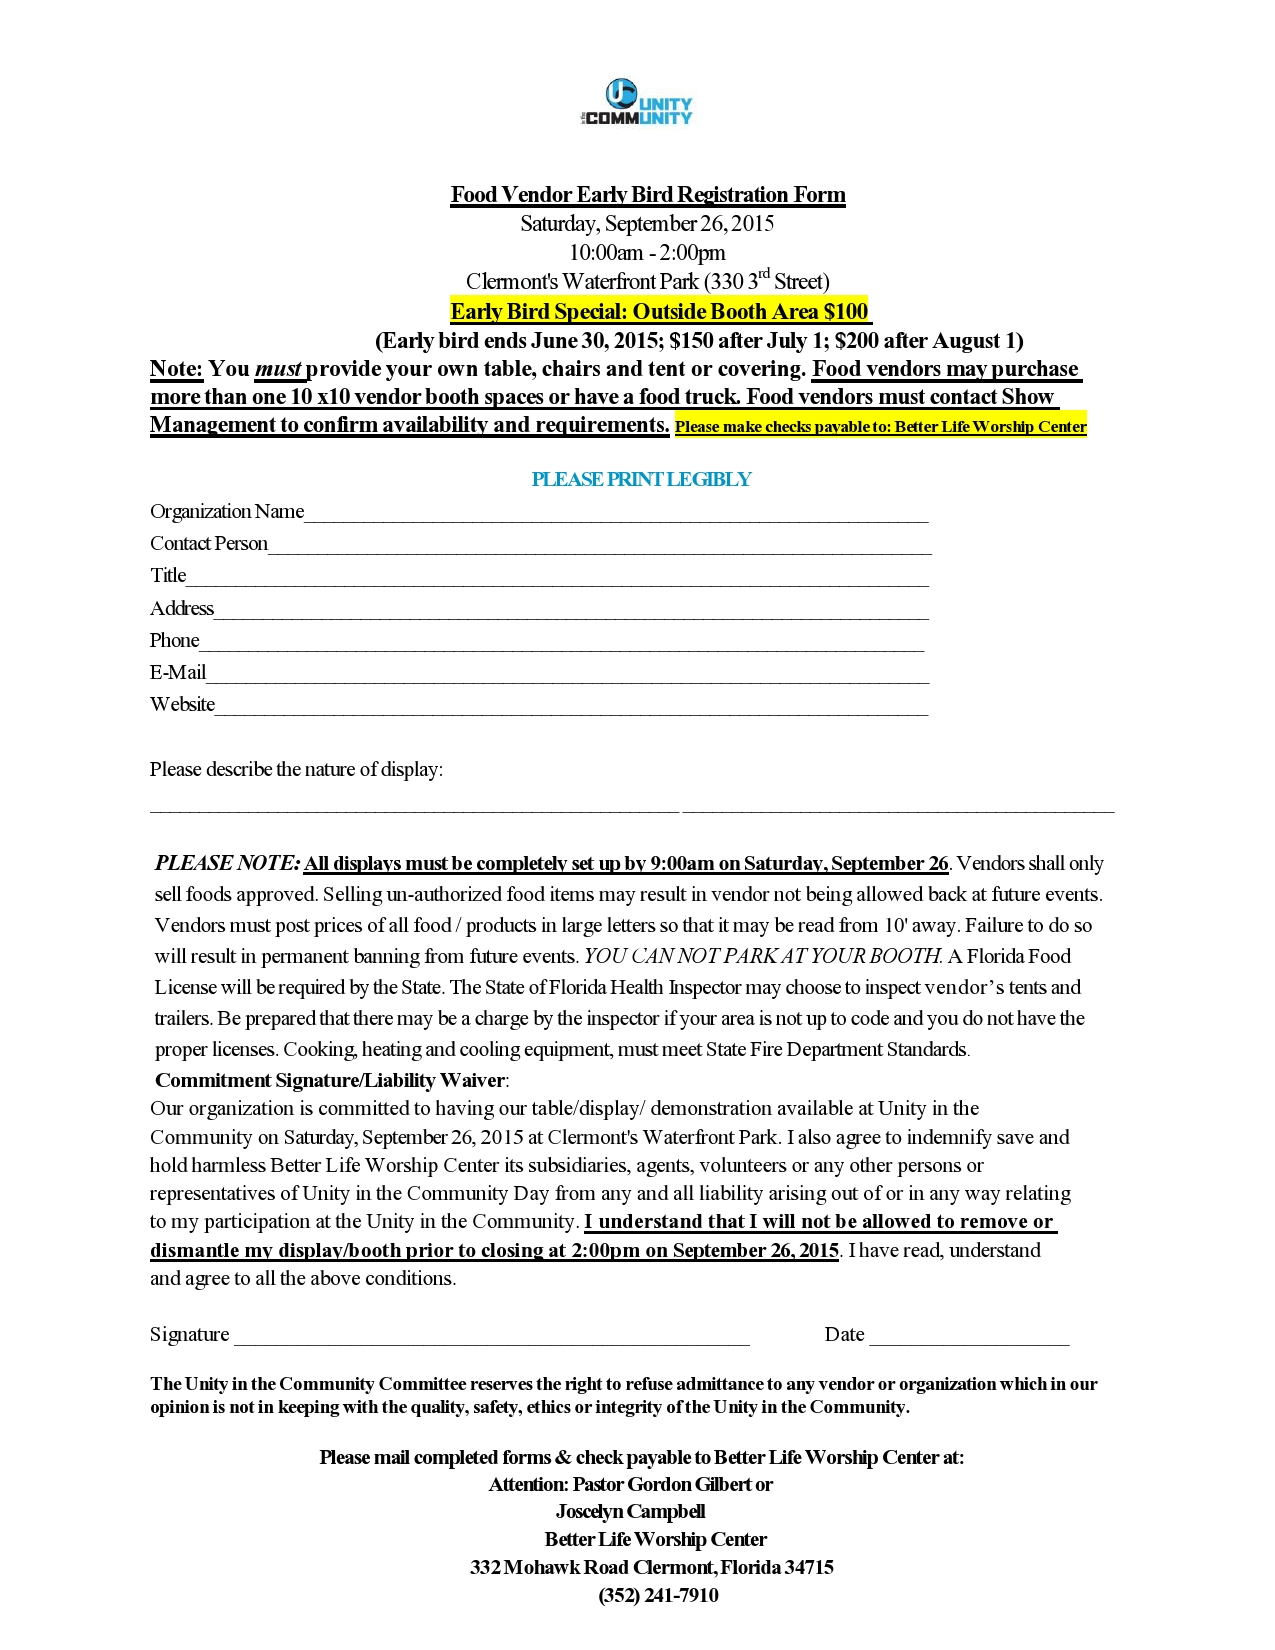 Food Vendors Registration Forms – Vendor Registration Form